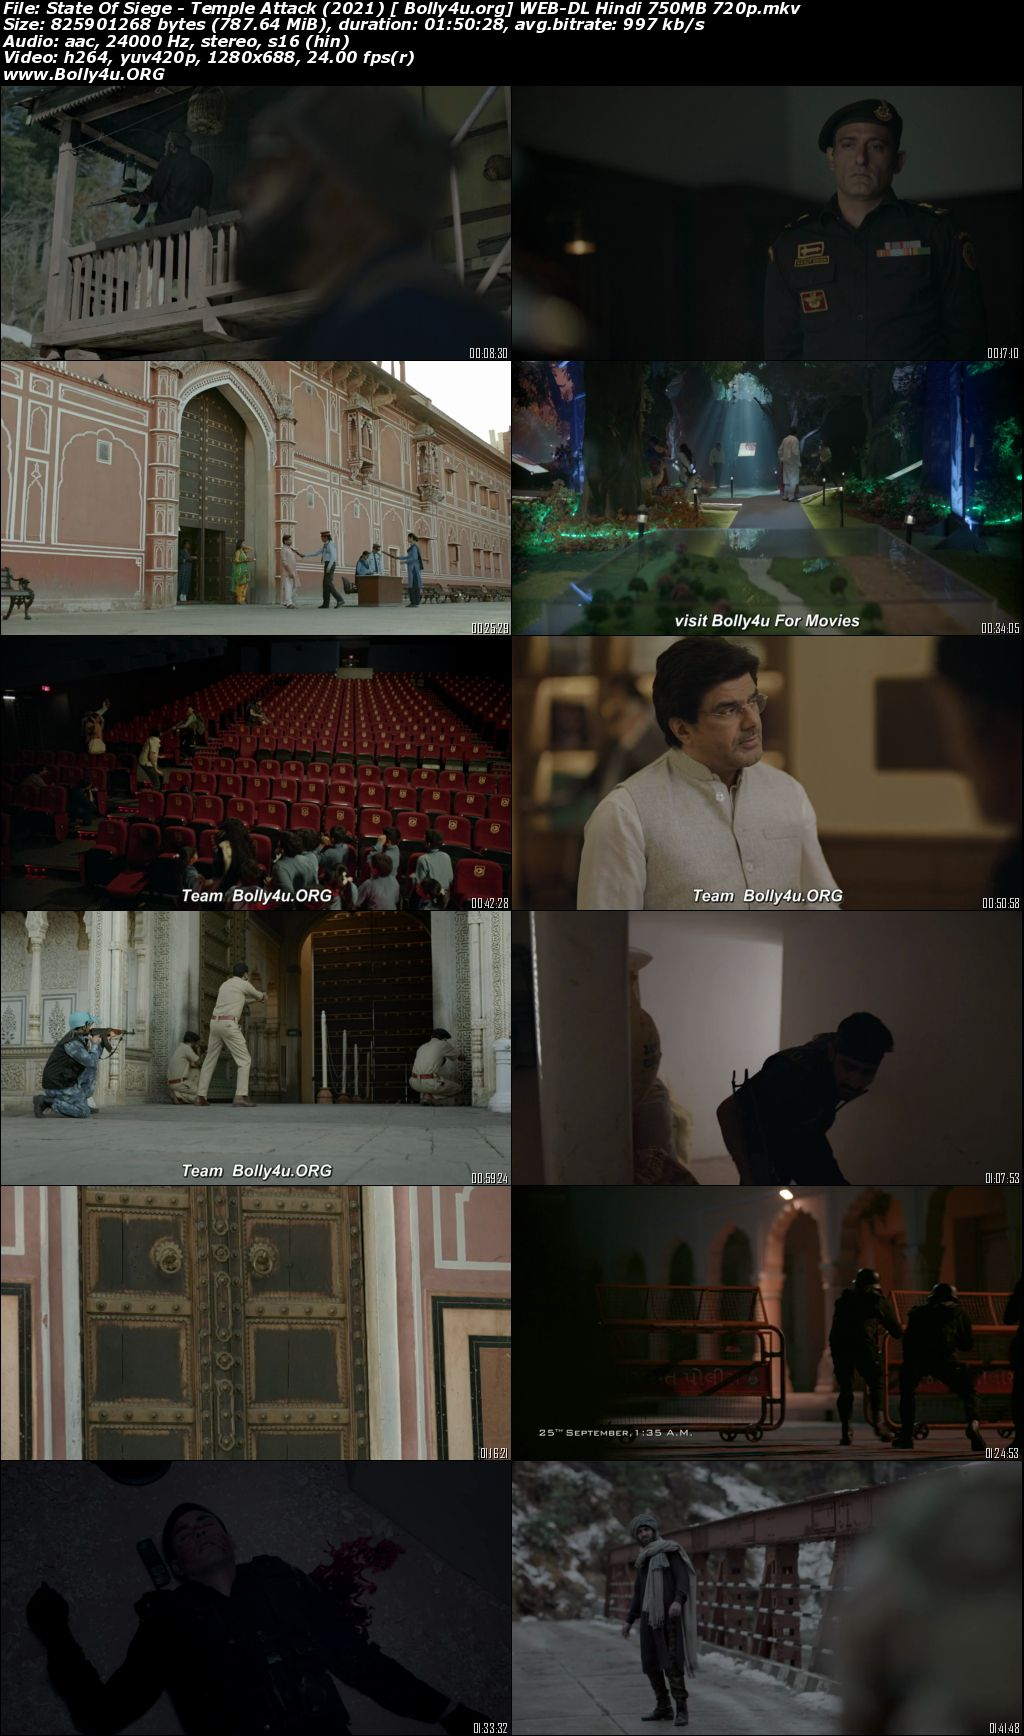 State Of Siege Temple Attack 2021 WEB-DL 350Mb Hindi Movie Download 480p